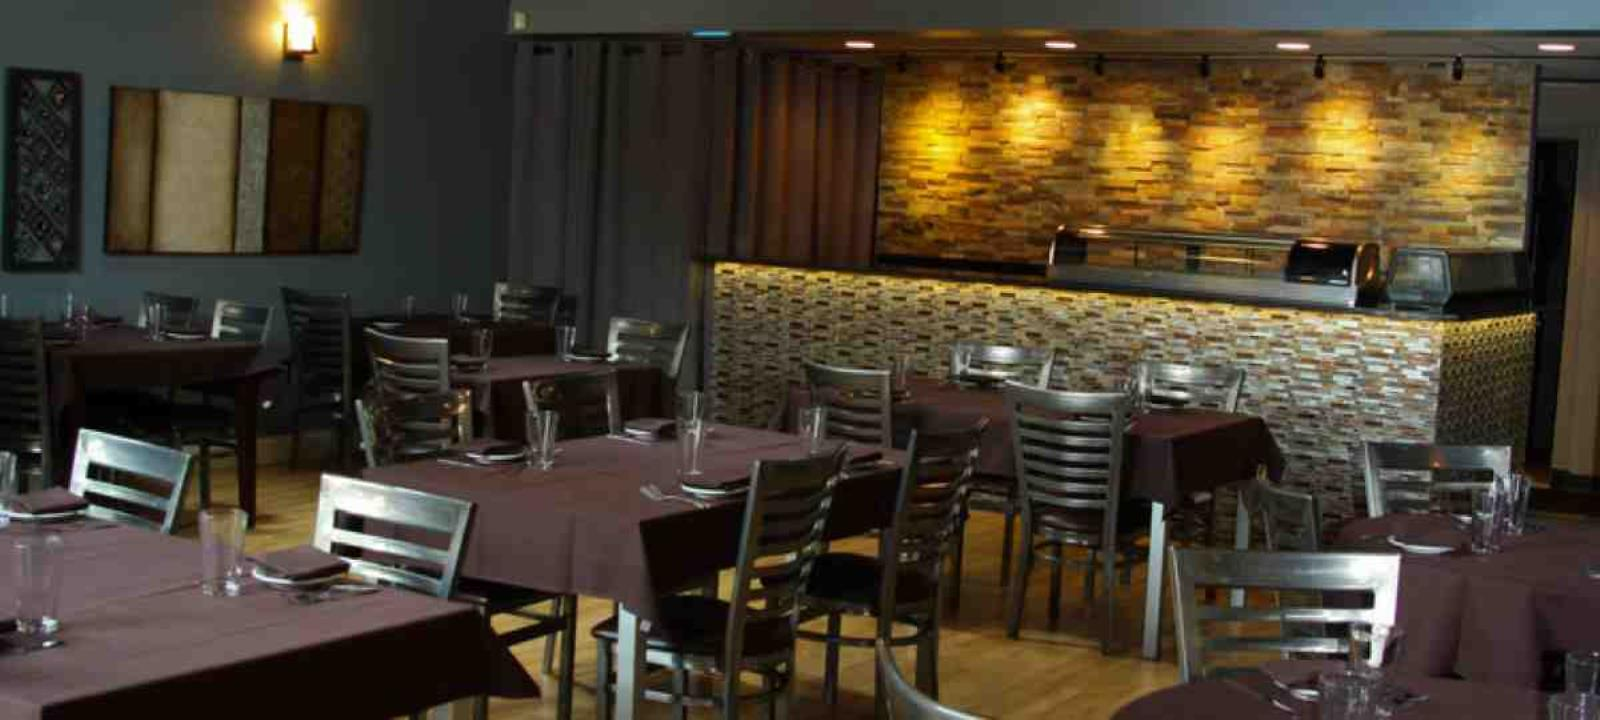 Lure Bistro Restaurant - Picture